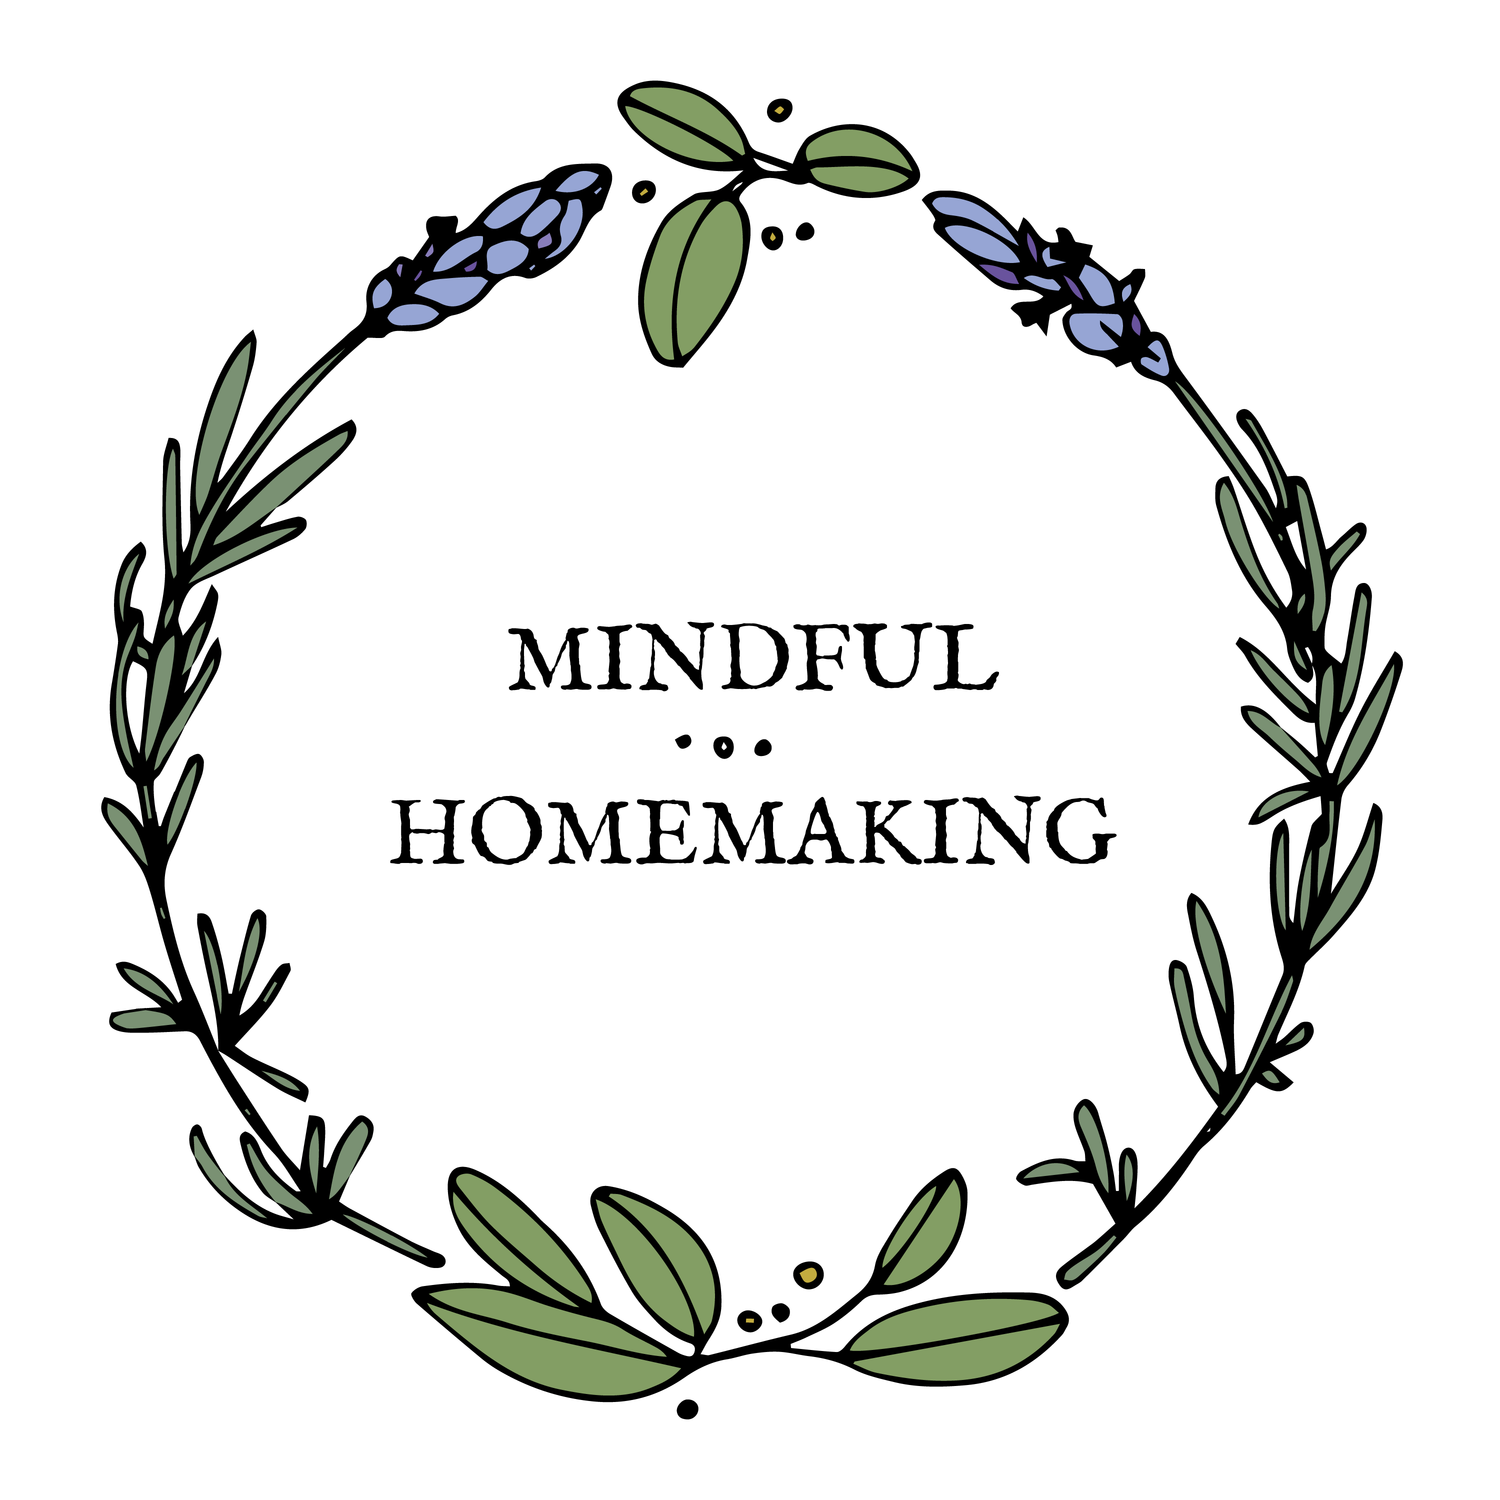 Mindful Homemaking